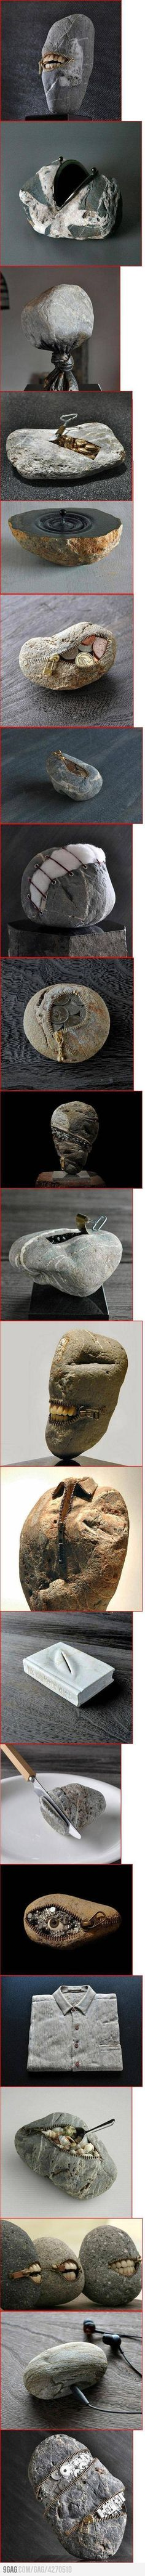 Art made with rocks! Hirotoshi Itoh uses rocks obtained in a river bank close to his house to make sculptures with an incredible sense of humor and structure.